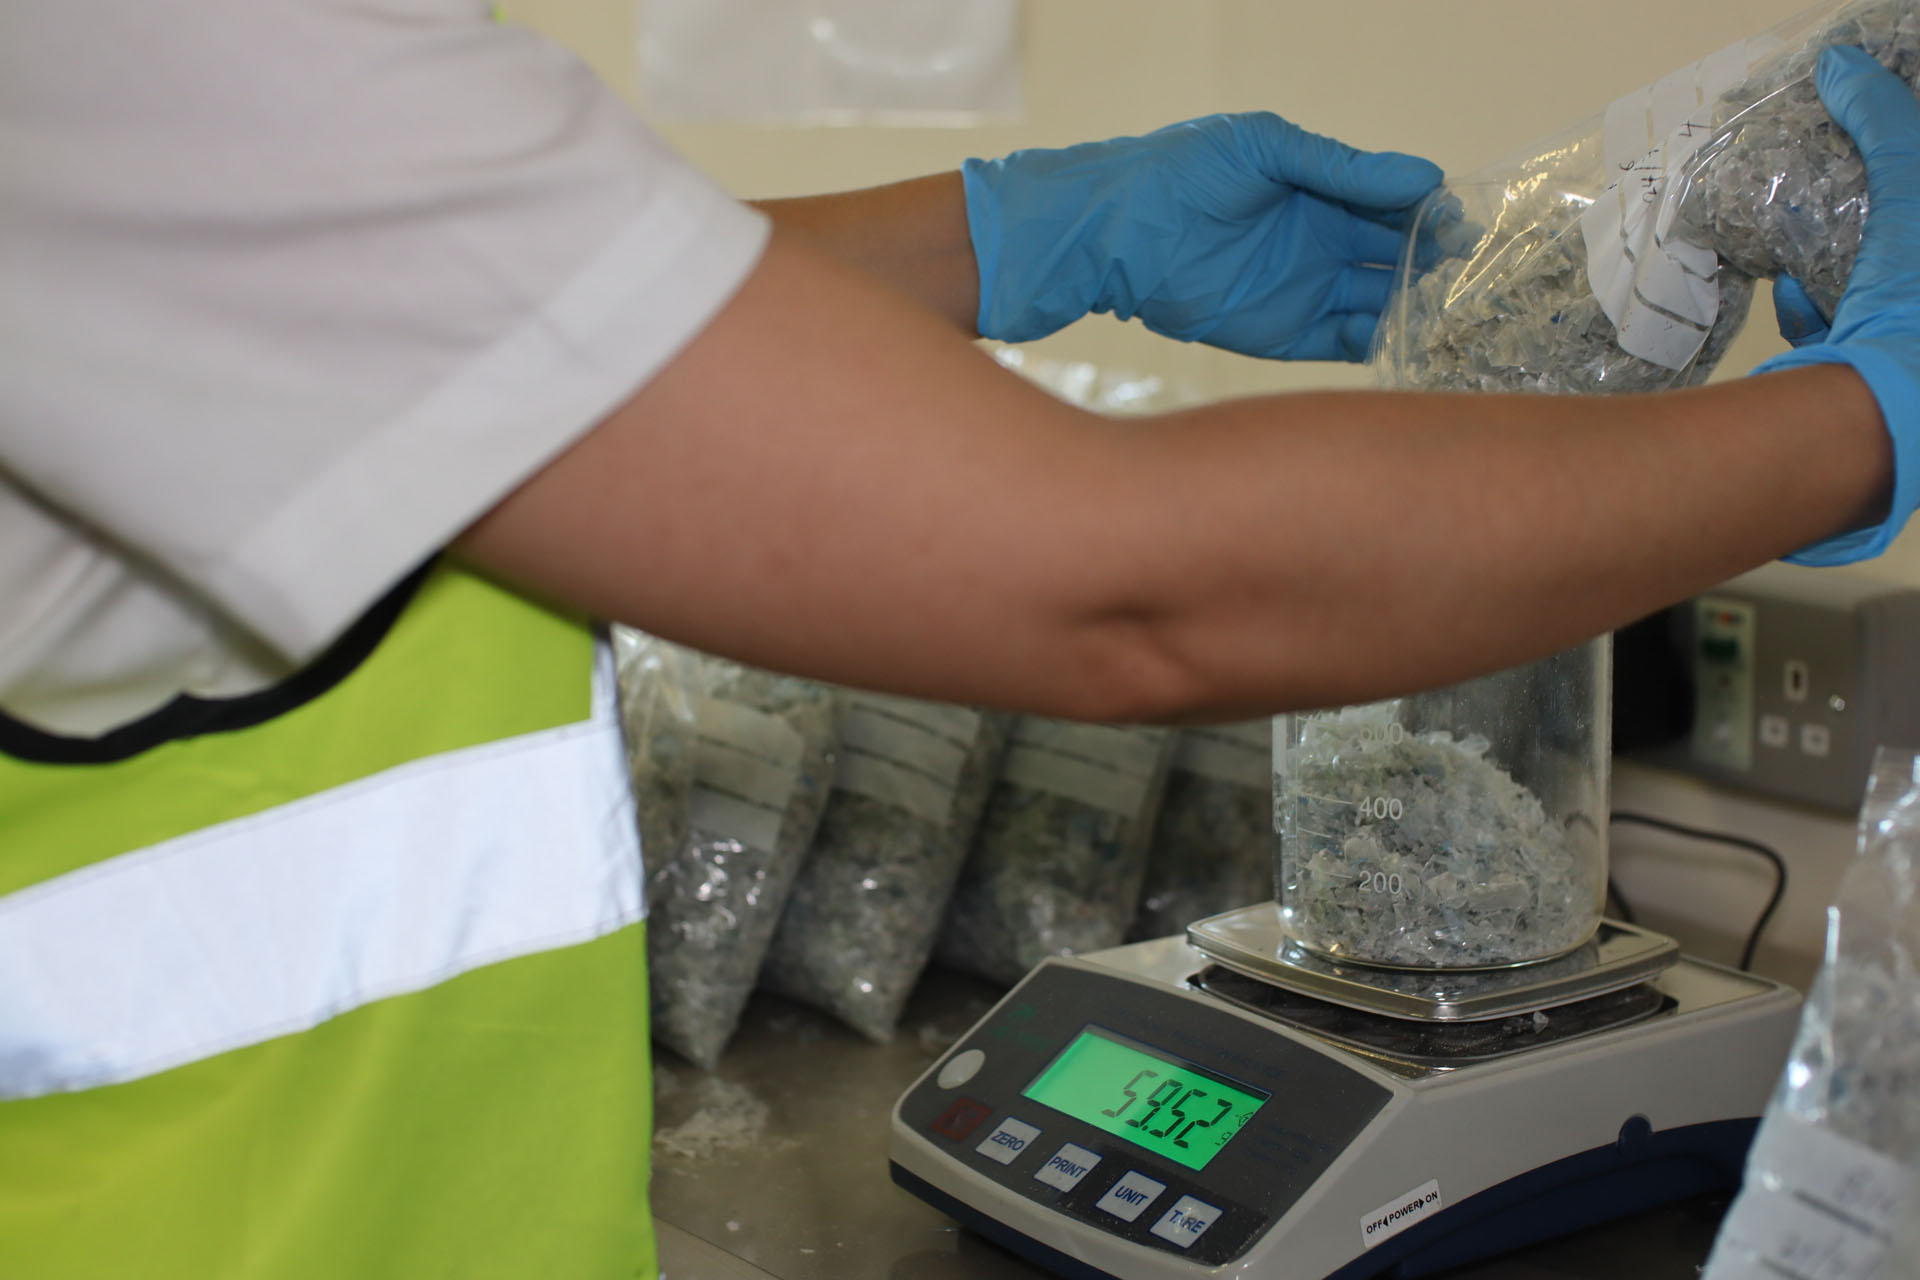 Recycled plastic being weighed